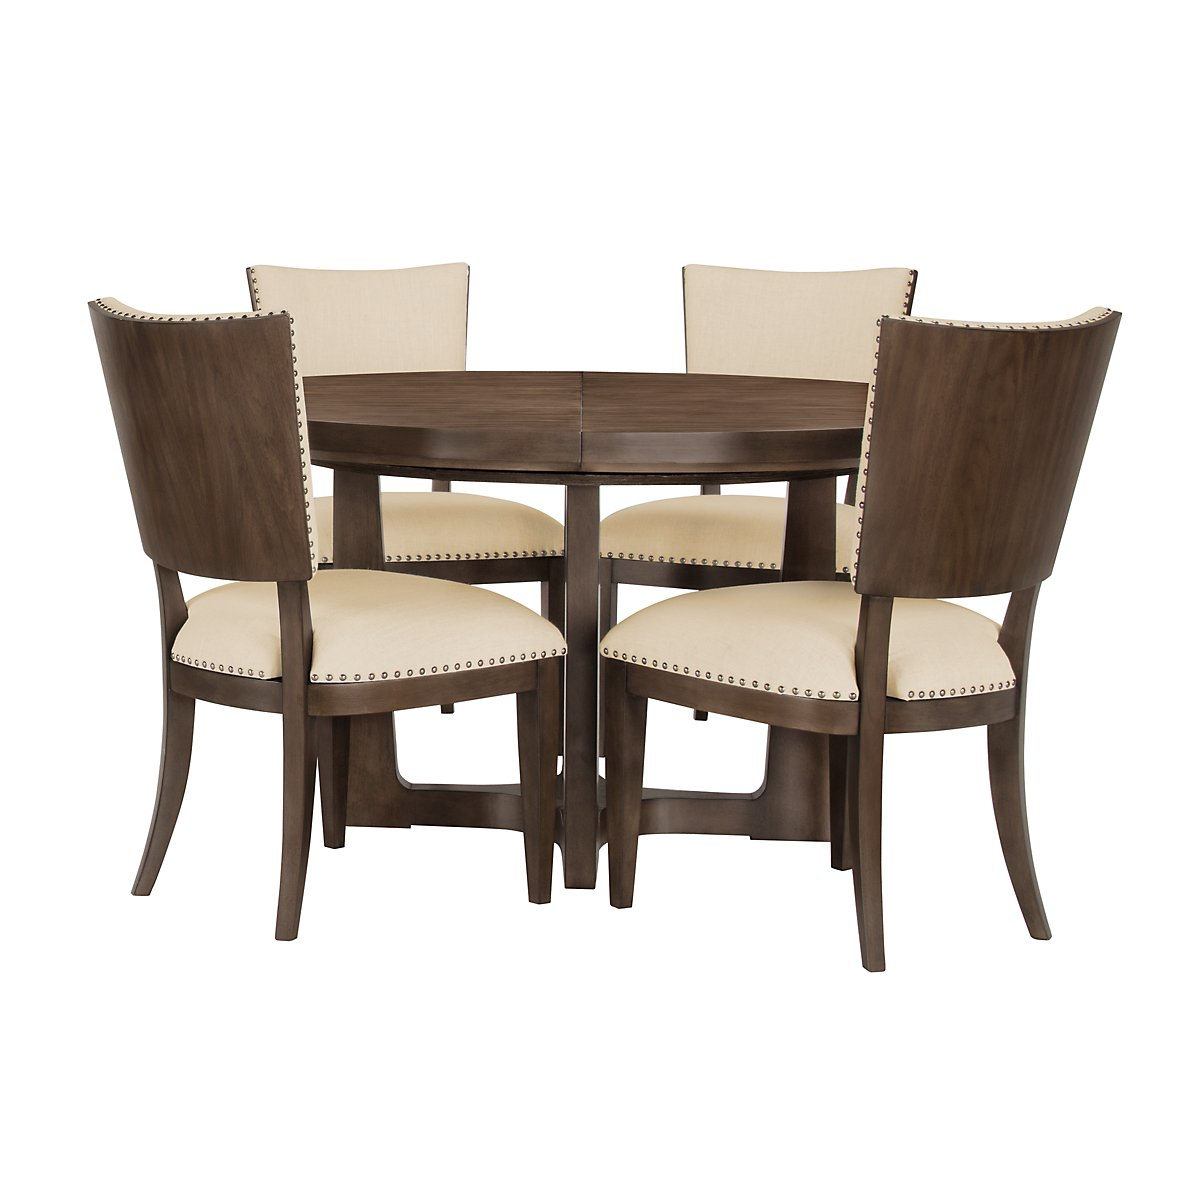 Preston Mid Tone Round Table & 4 Upholstered Chairs